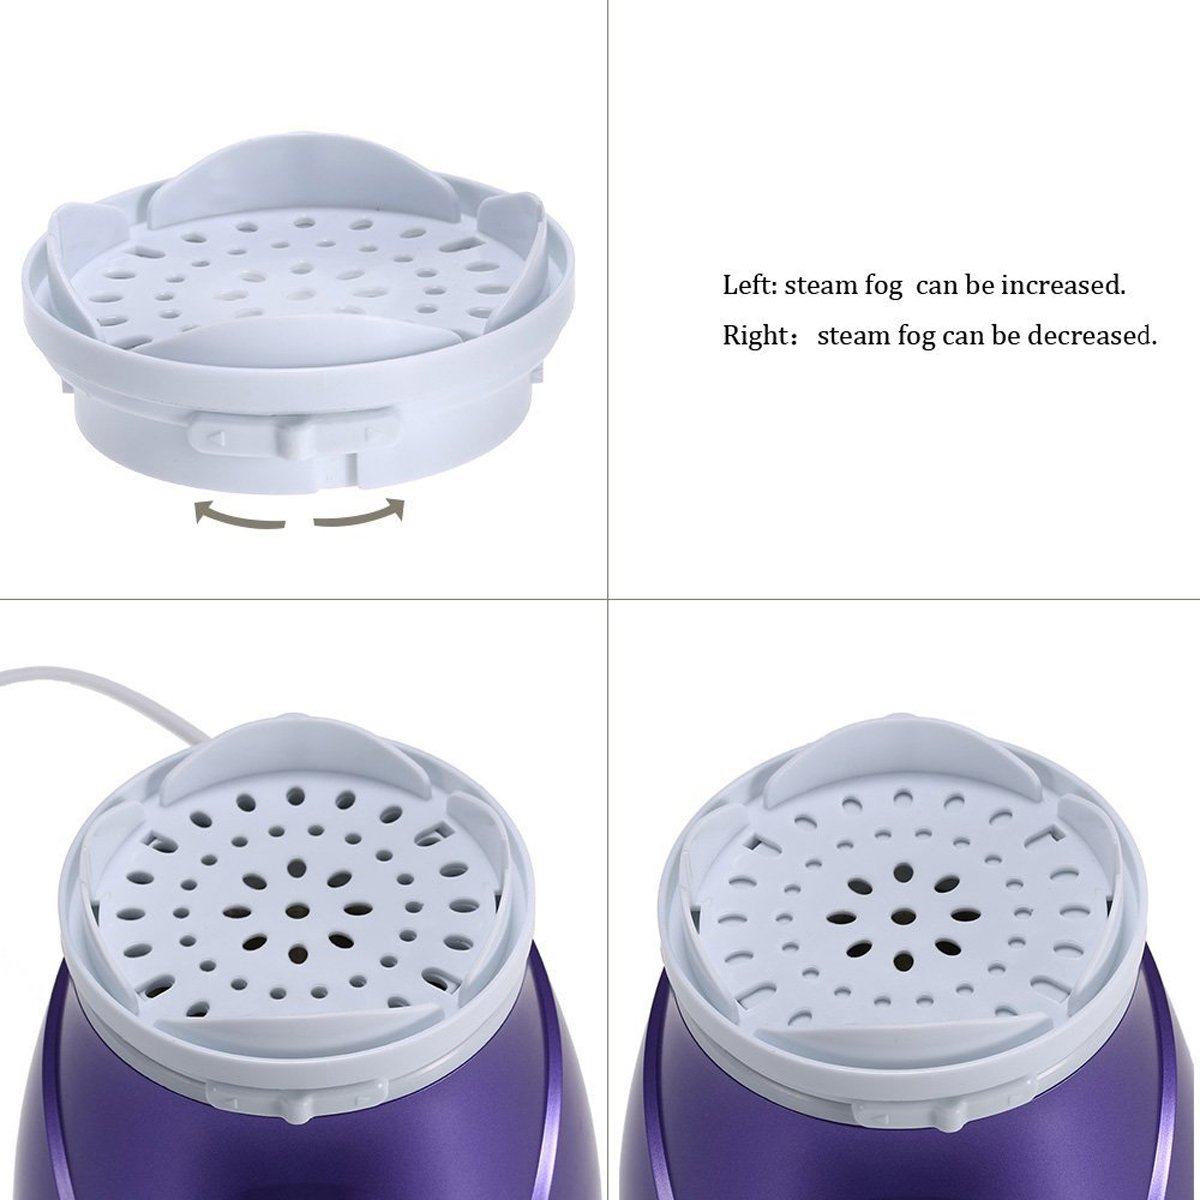 Facial Steamer, szwintec Professional Sinus Steam Inhaler Face Skin Moisturizer Facial Mask Sauna Spa Steamers Sprayer with Aromatherapy Diffuser Humidifier Function by szwintec (Image #4)